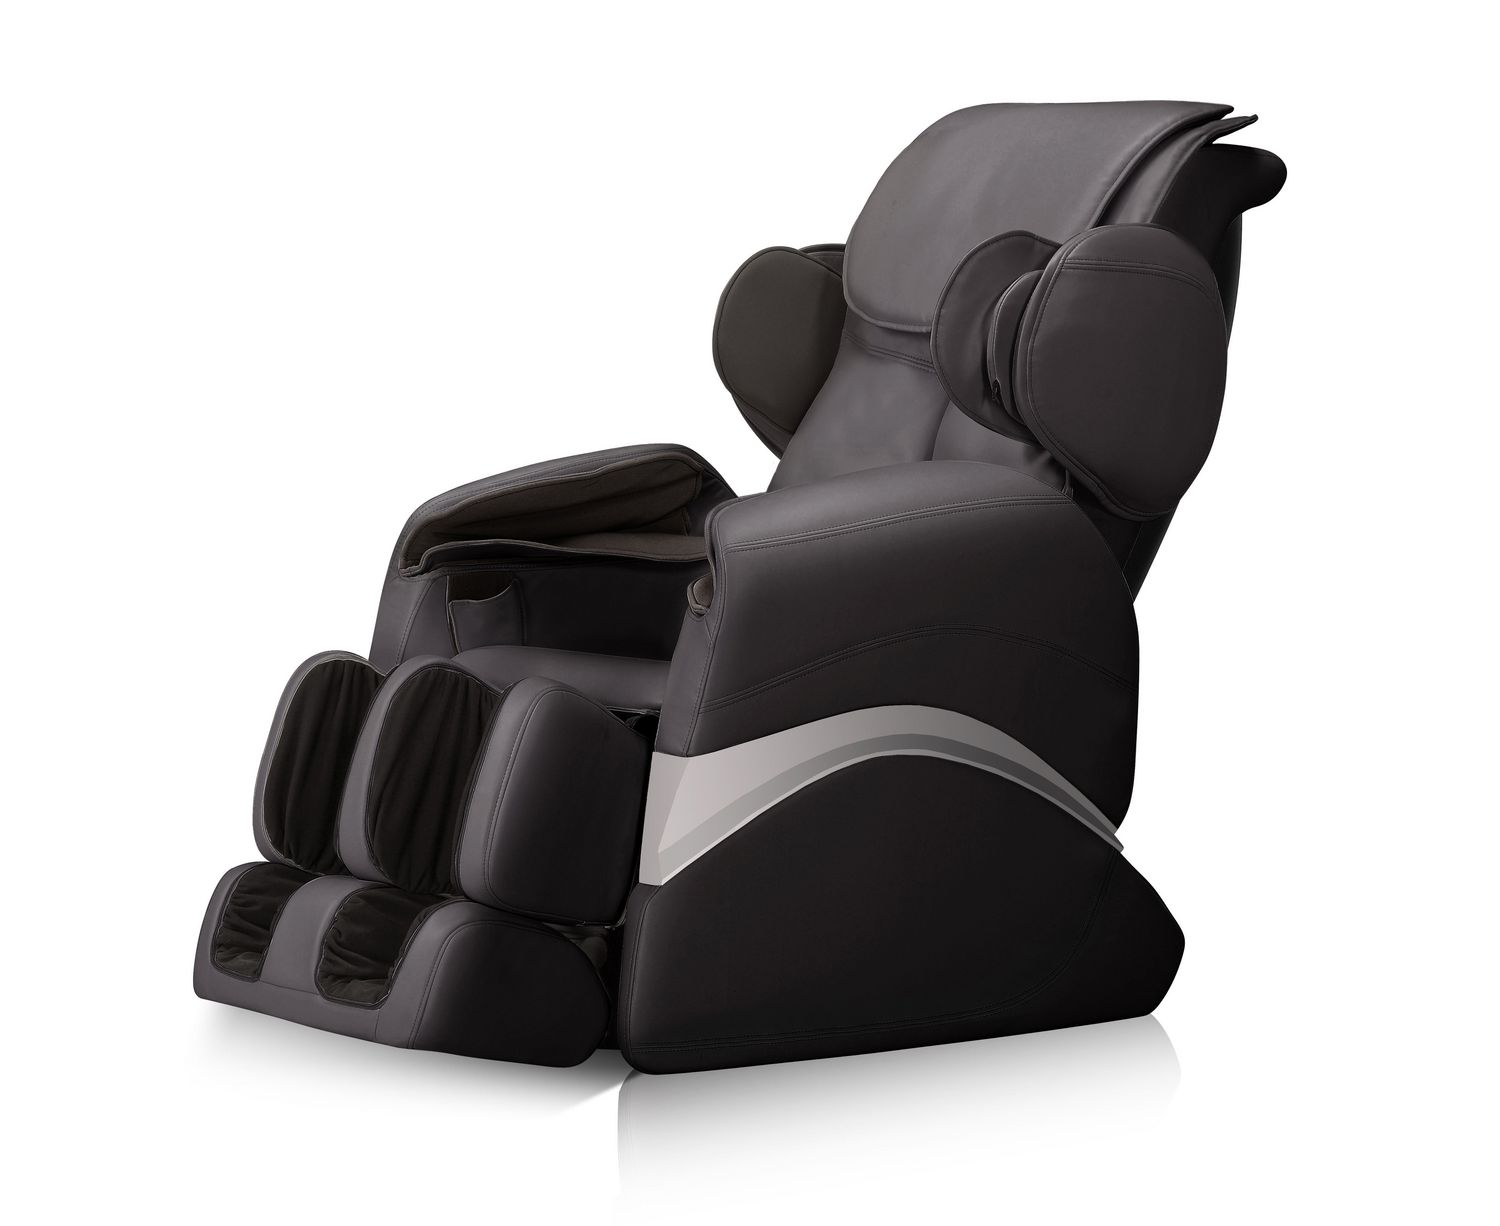 cyber abec more os dream electric pro osaki chair products massage zero ship gravity chairs